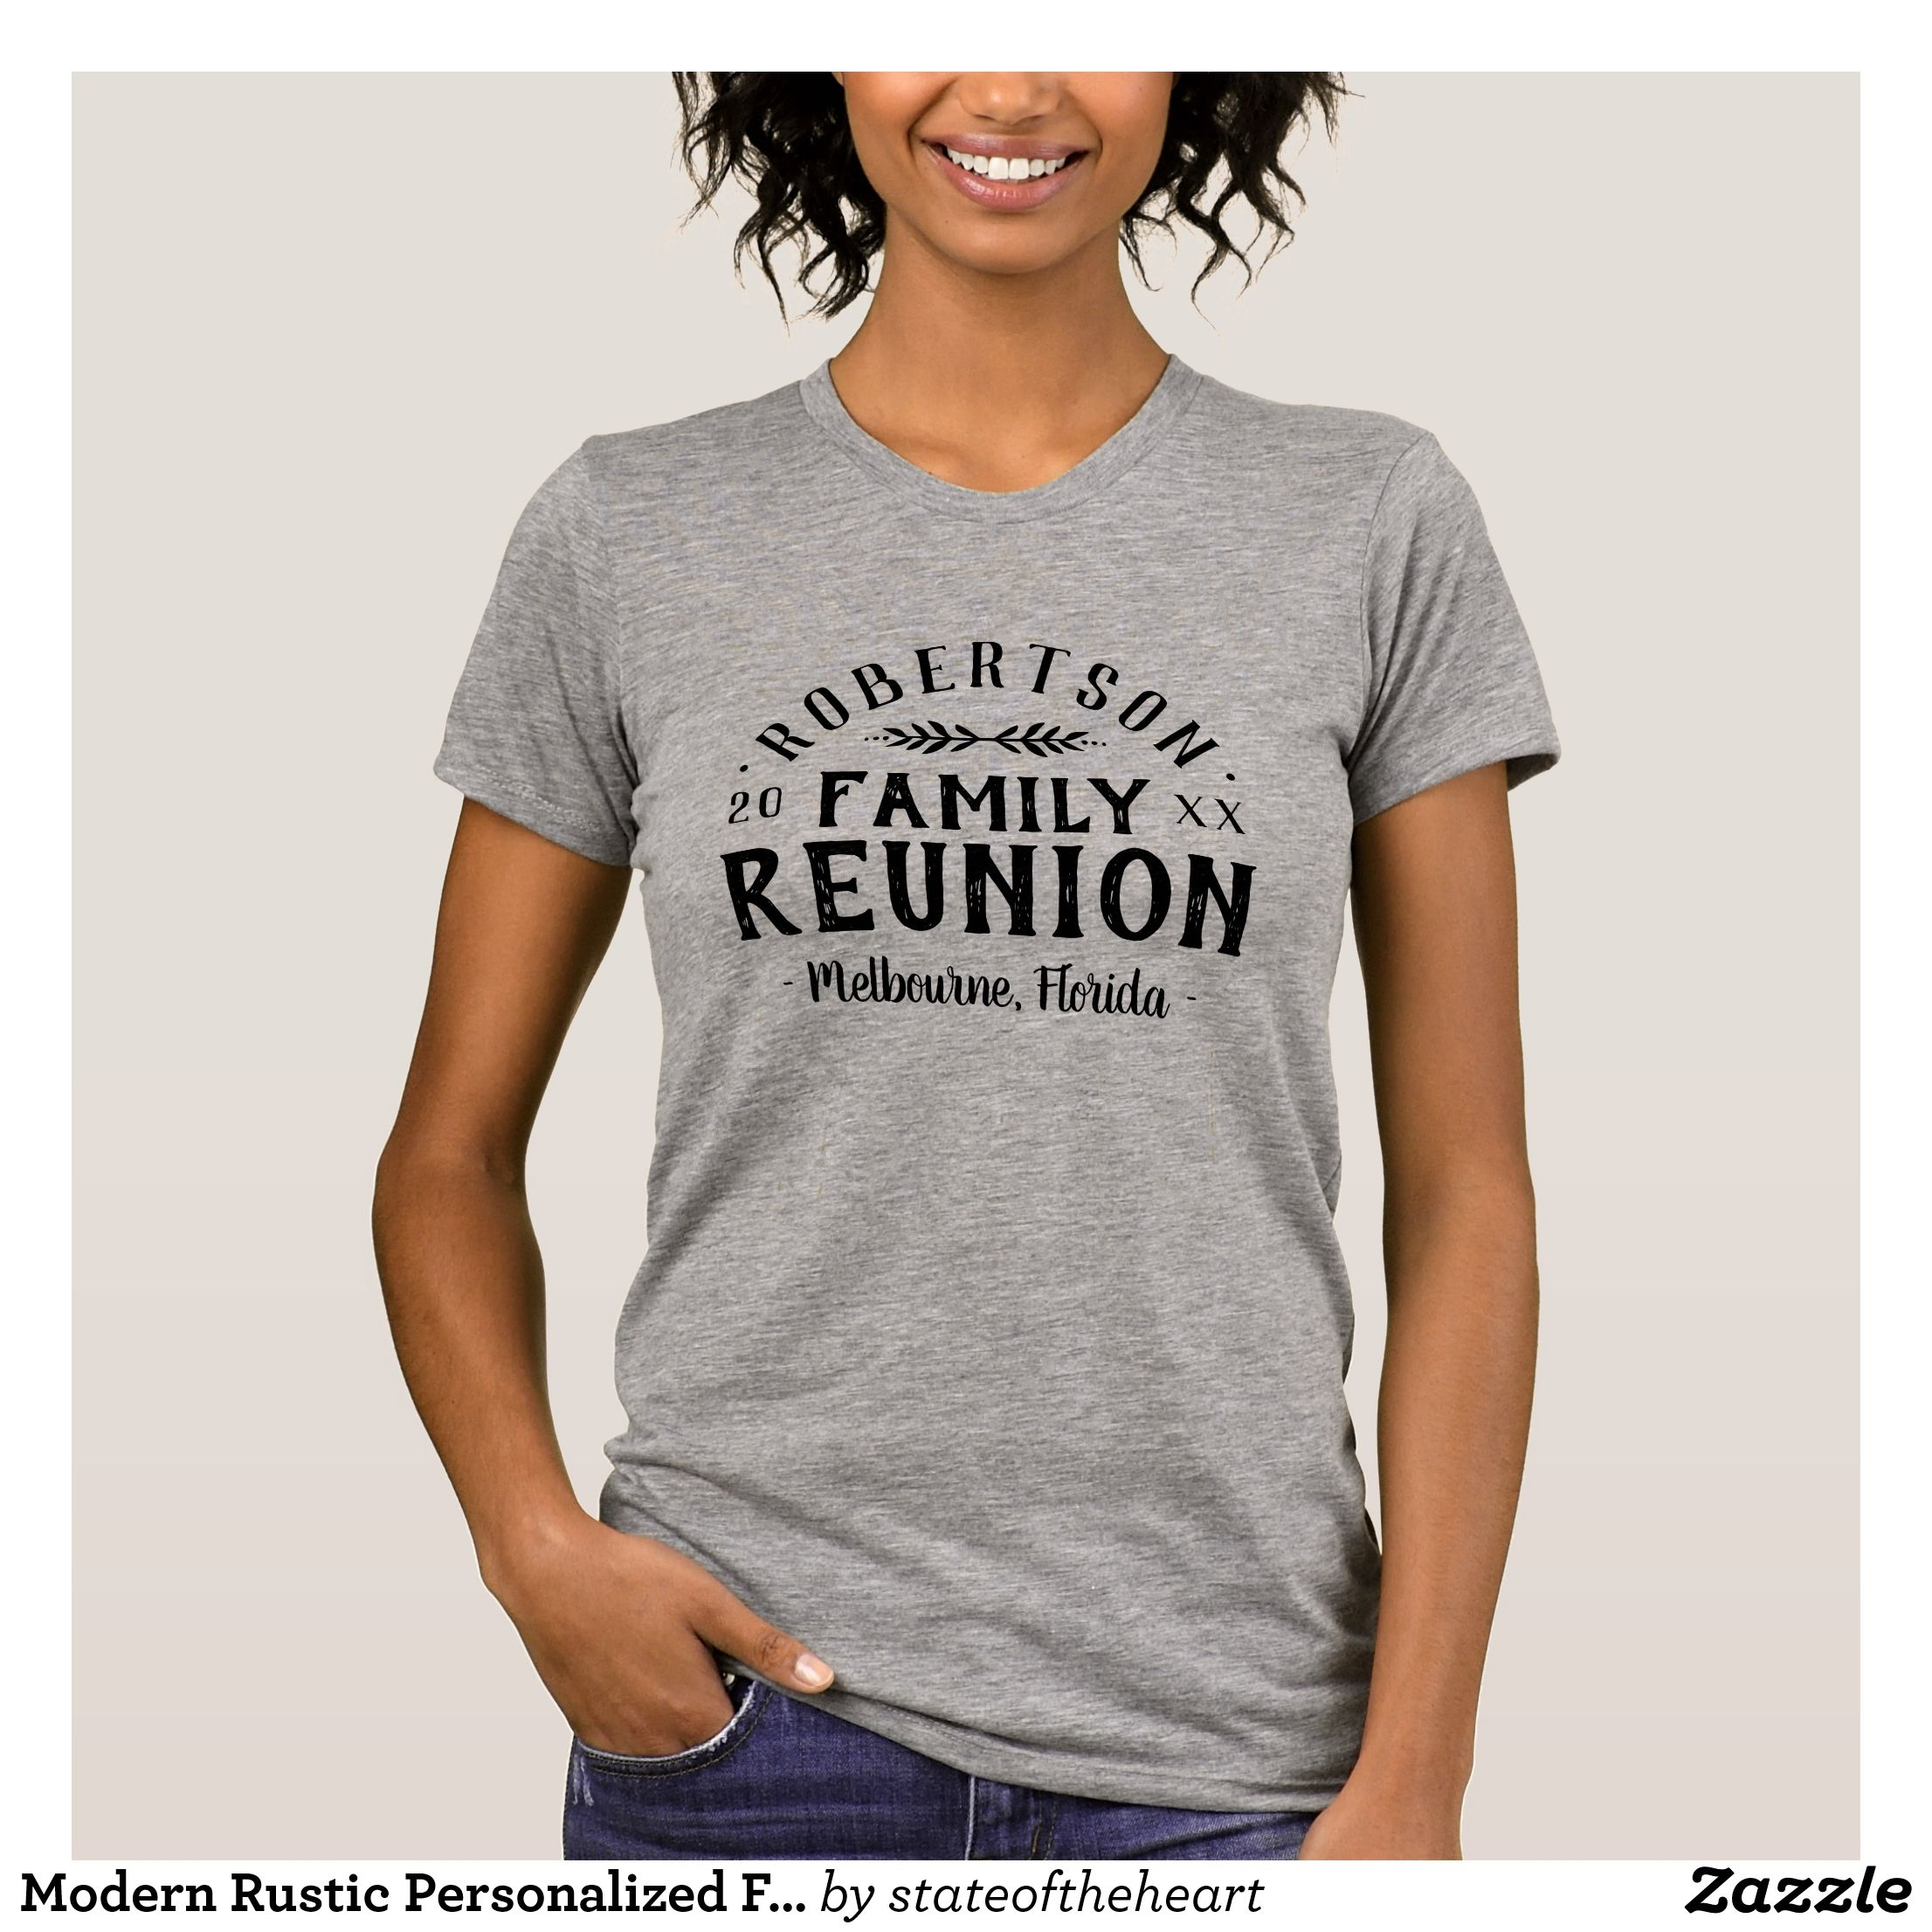 Modern Rustic Personalized Family Reunion Tee - Fashionable Women s Shirts  By Creative Talented Graphic Designers -  shirts  tshirts  fashion  apparel  ... f5bedc585